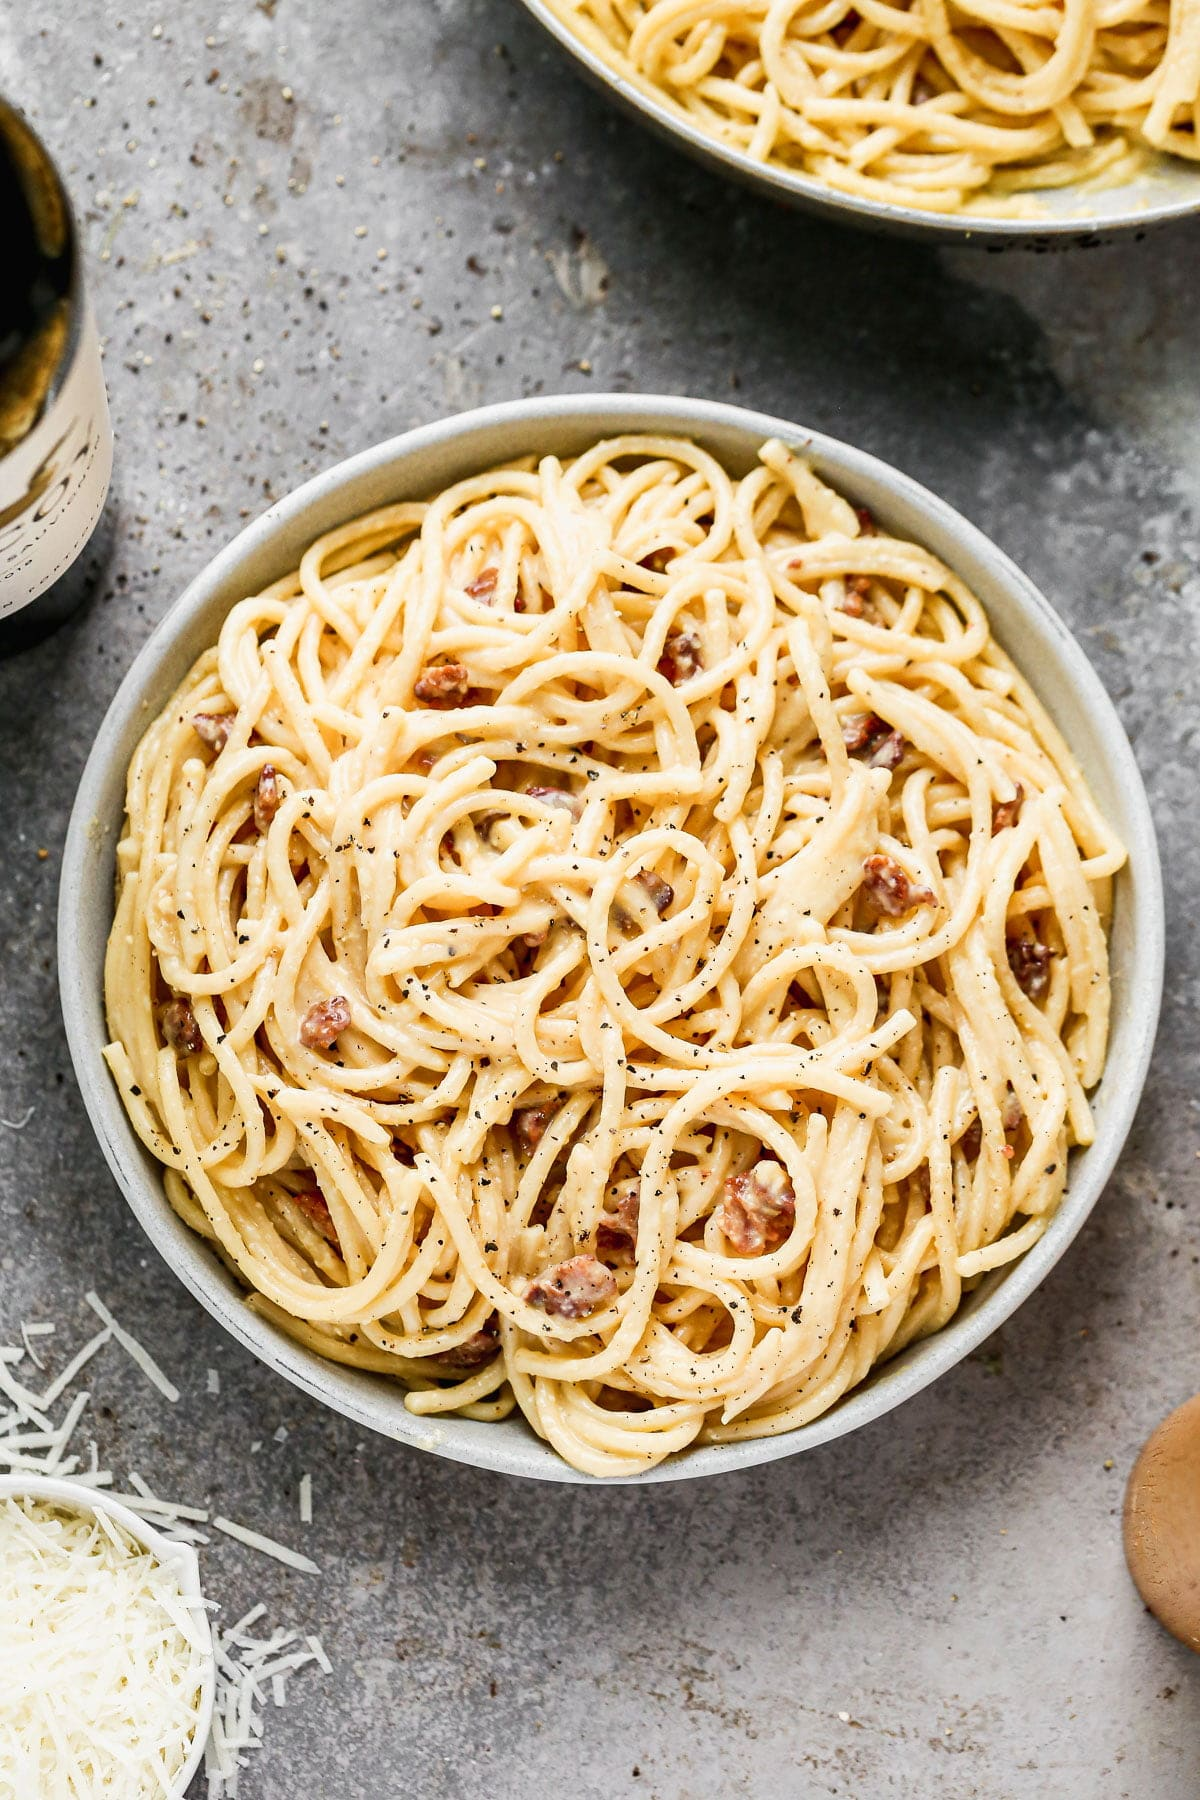 Silky-smooth noodles twirled in a rich, creamy (but cream-less) sauce, nutty pecorino cheese, and bits of salty bacon, our Bucatini Carbonara is the ultimate in Italian comfort food and arguably, the simplest. Our version amps up the amount of both cheese and bacon, adds in a little bit of garlic, and swaps out classic spaghetti for thick bucatini noodles.